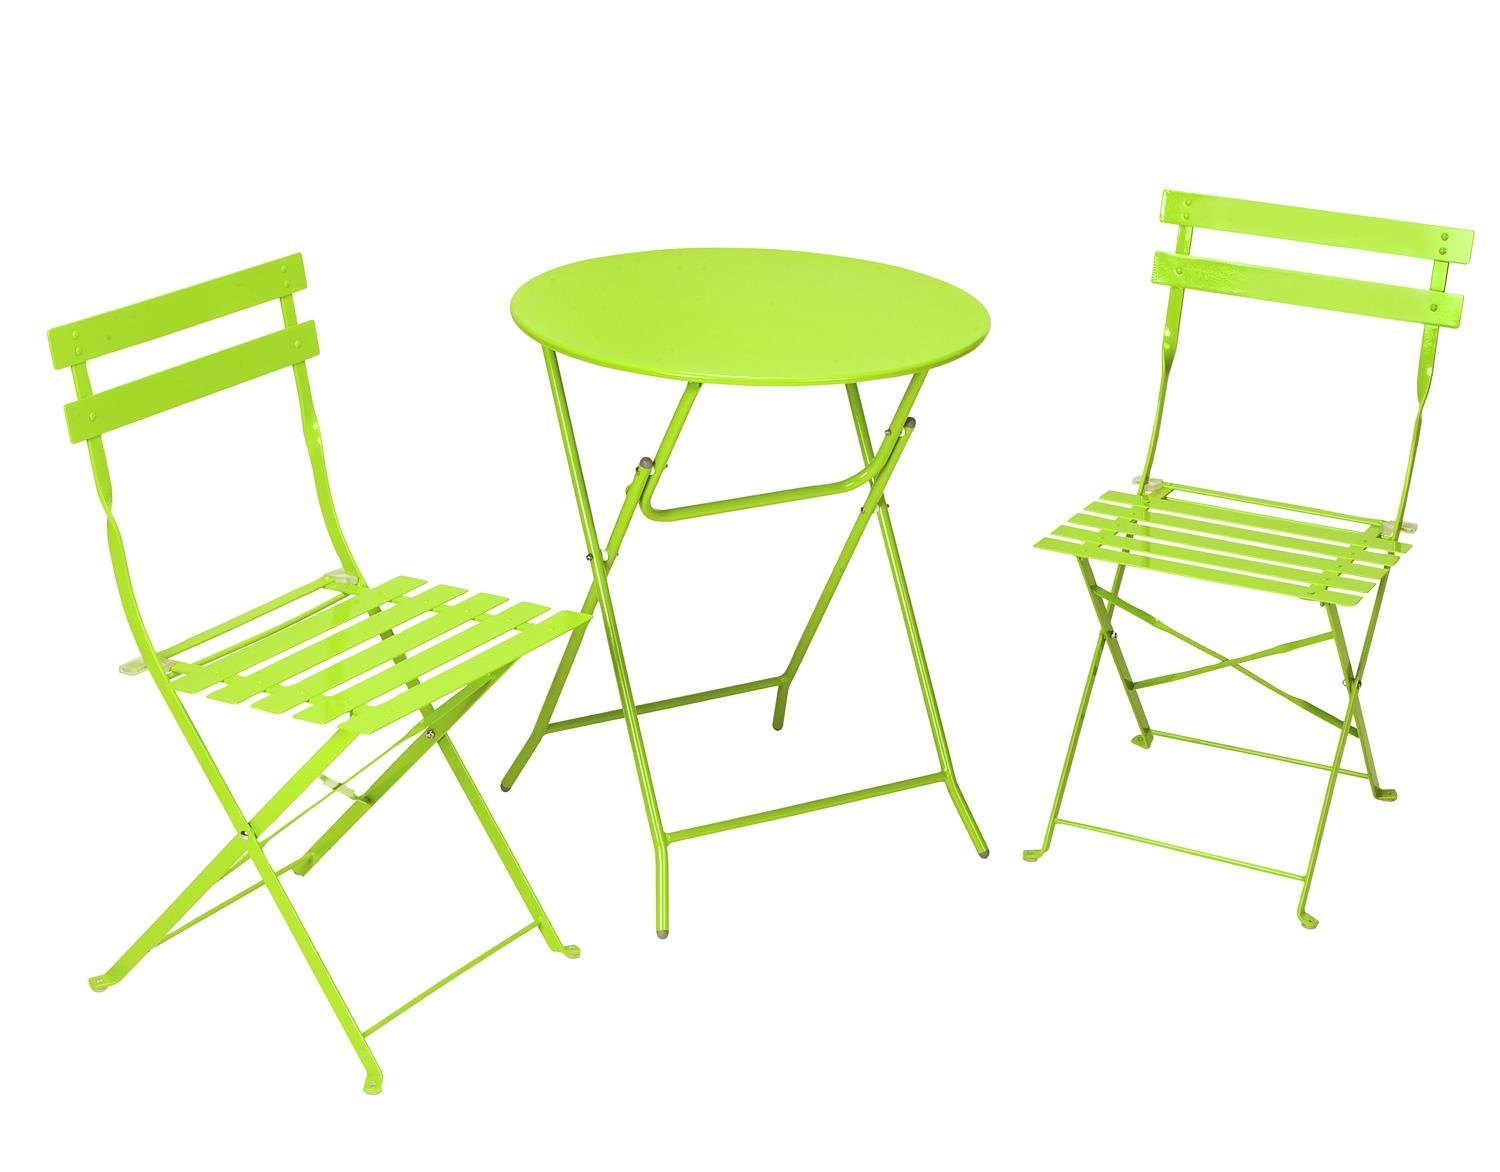 Amazon.com Cosco 3-Piece Folding Bistro-Style Patio Table and Chairs Set Bright Green Kitchen u0026 Dining  sc 1 st  Amazon.com & Amazon.com: Cosco 3-Piece Folding Bistro-Style Patio Table and ...